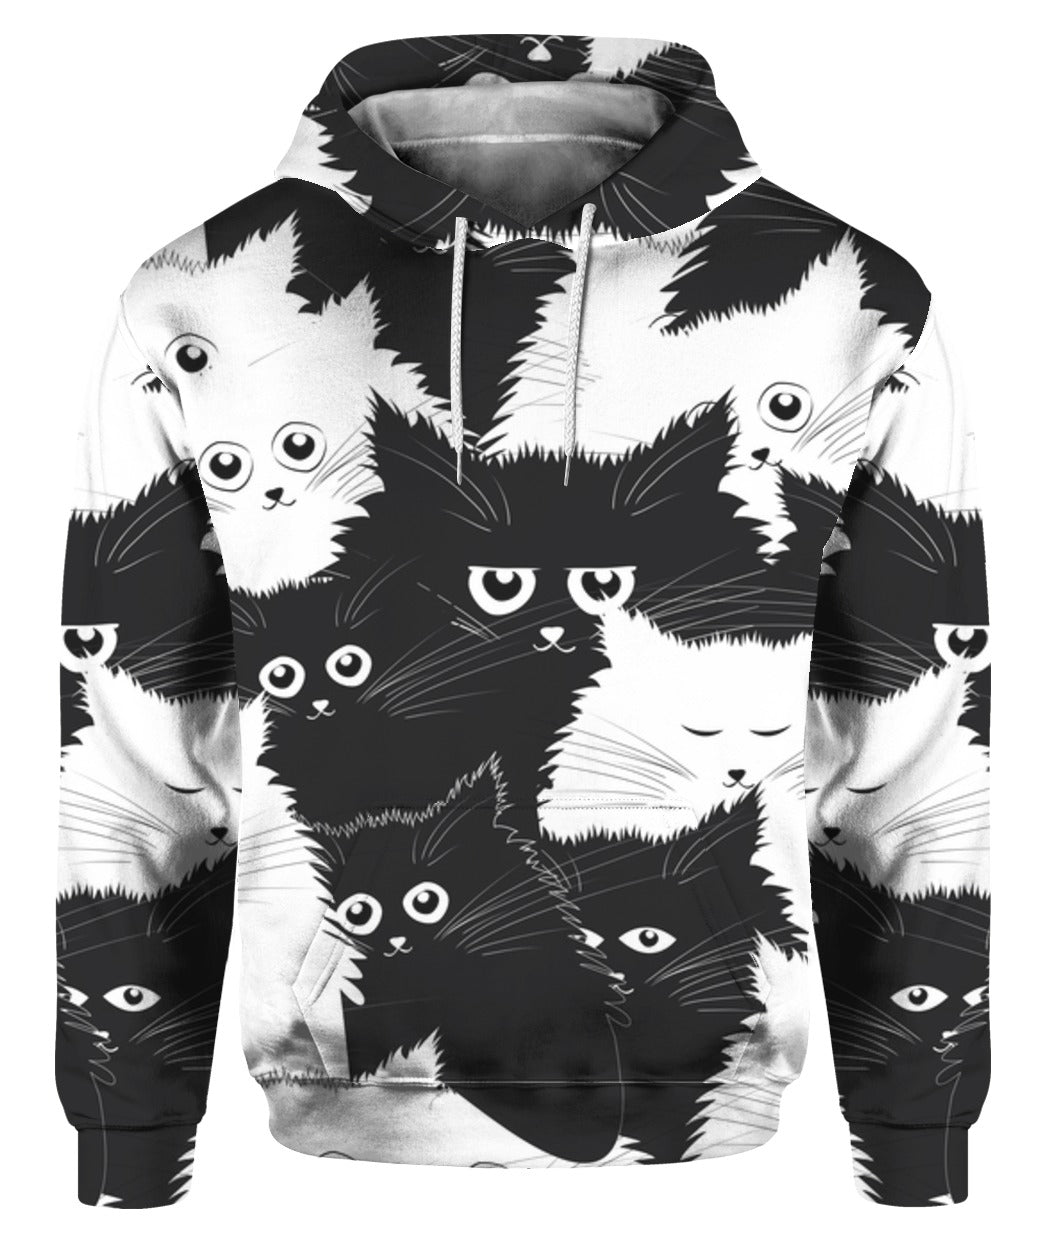 Black And White Cute Cat 3D Hoodie Full Printed